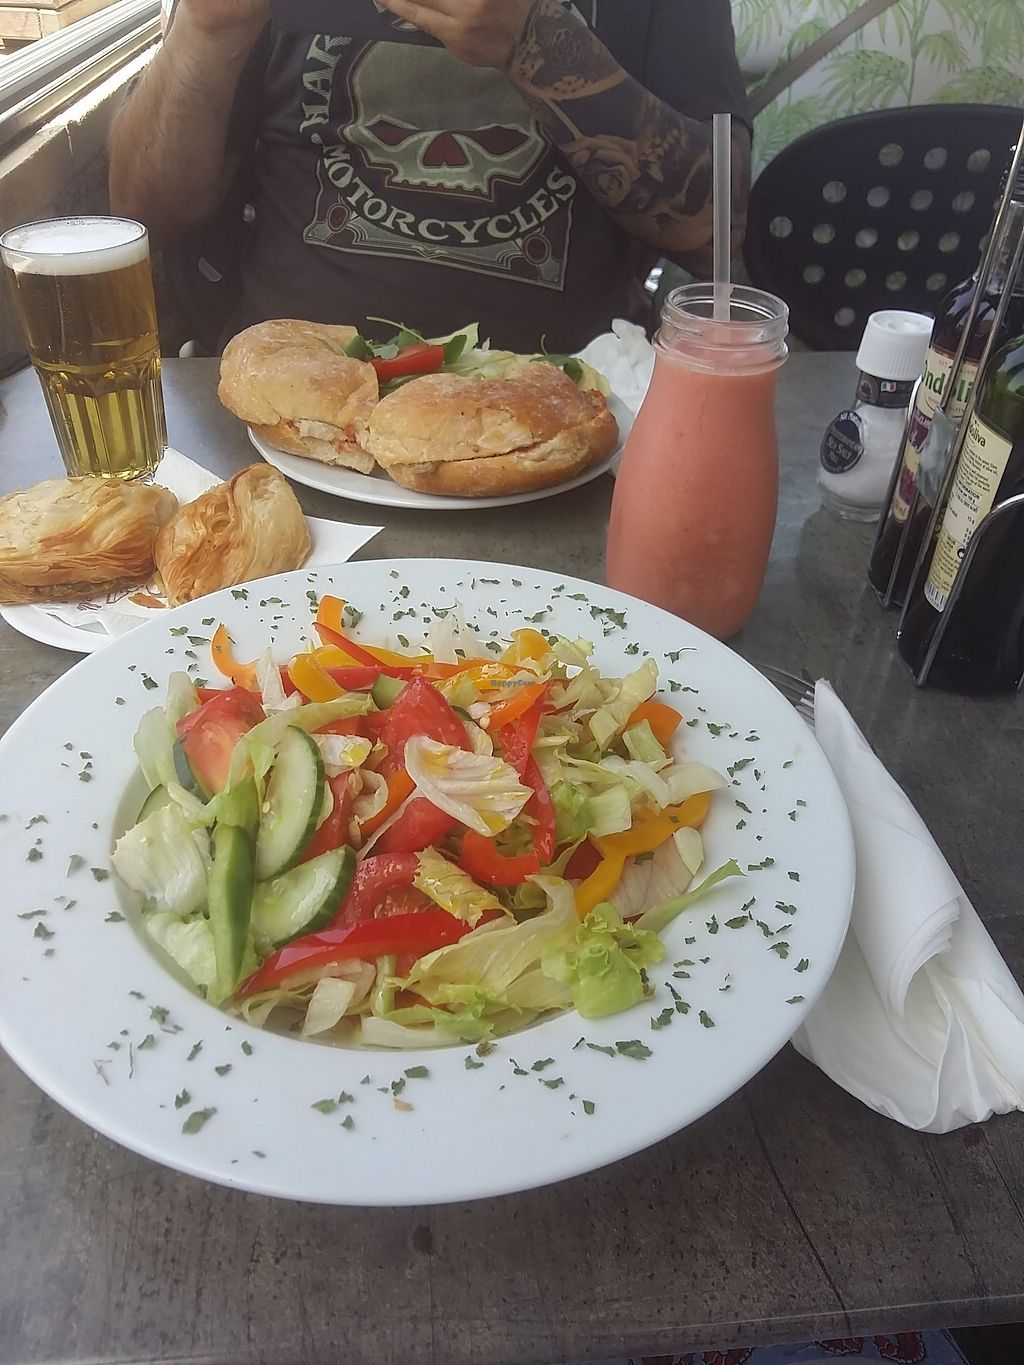 "Photo of Vinum  by <a href=""/members/profile/ninaframbuesa"">ninaframbuesa</a> <br/>The only thing I could get there was this veganized salad for 10€ and a smoothie <br/> August 5, 2017  - <a href='/contact/abuse/image/32143/289227'>Report</a>"